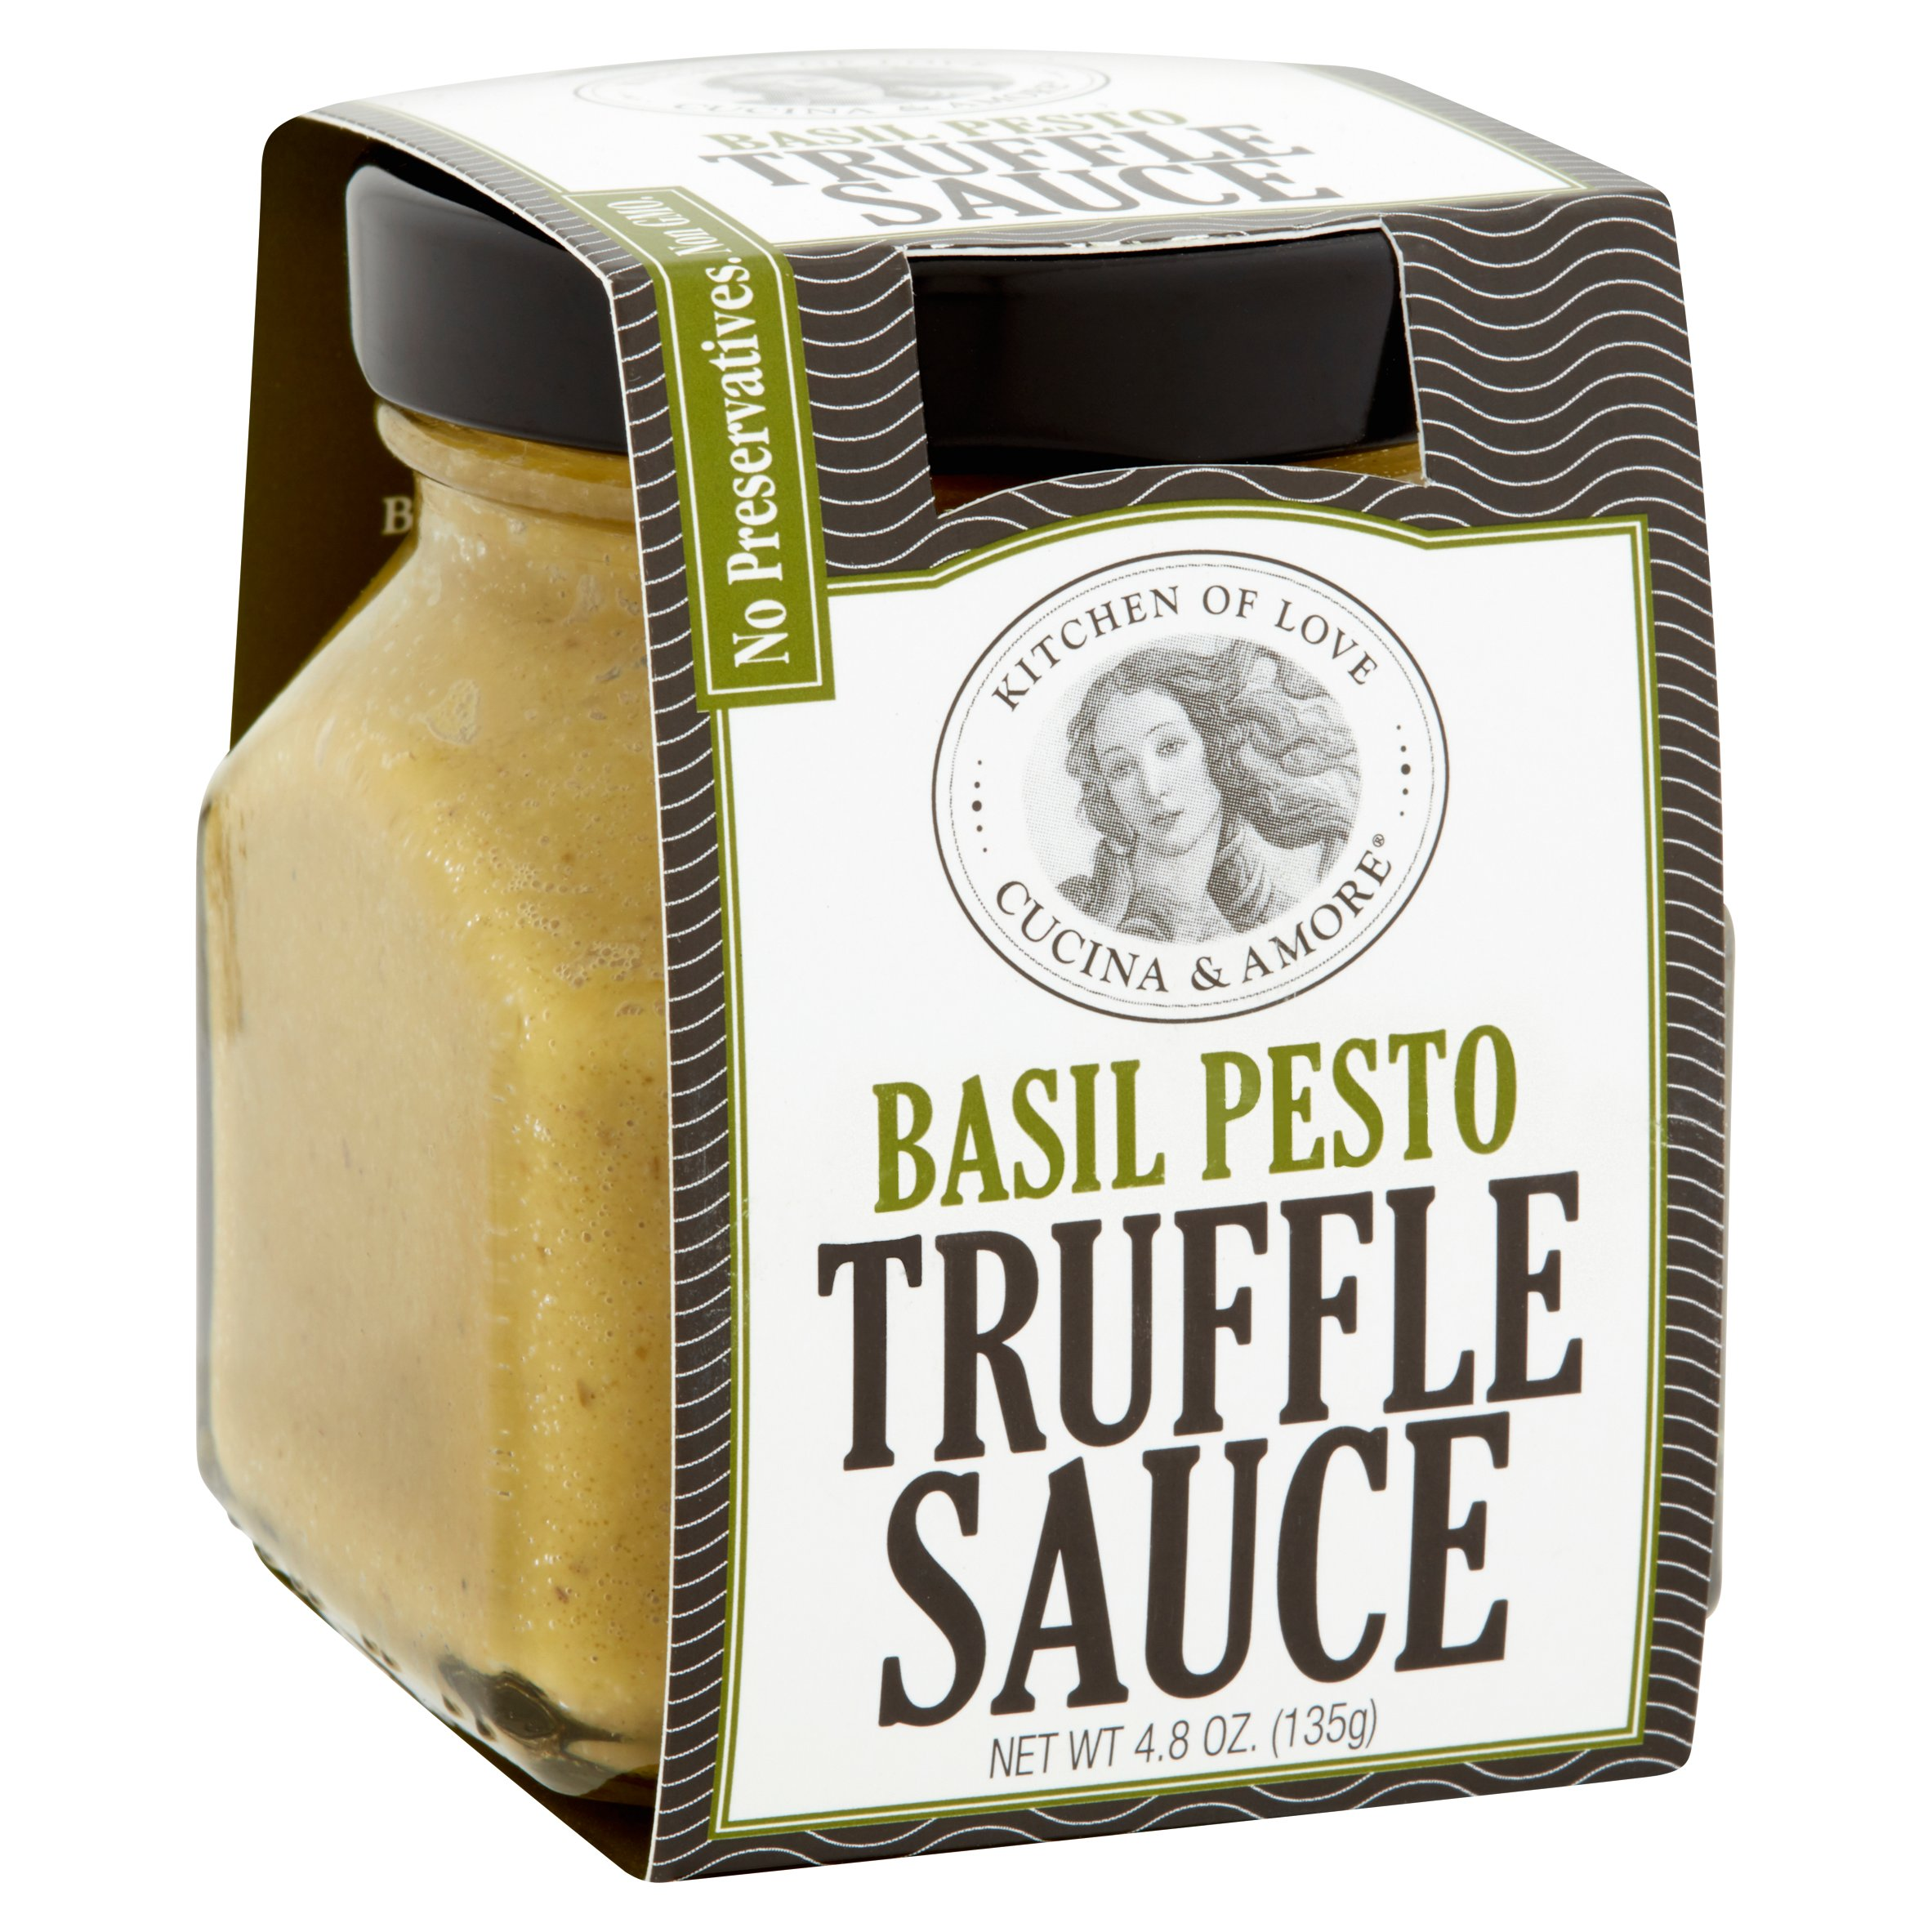 Cucina & Amore Inc Kitchen Of Love Cucina Amore Basil Pesto Truffle Sauce 4 8 Oz 6 Pack